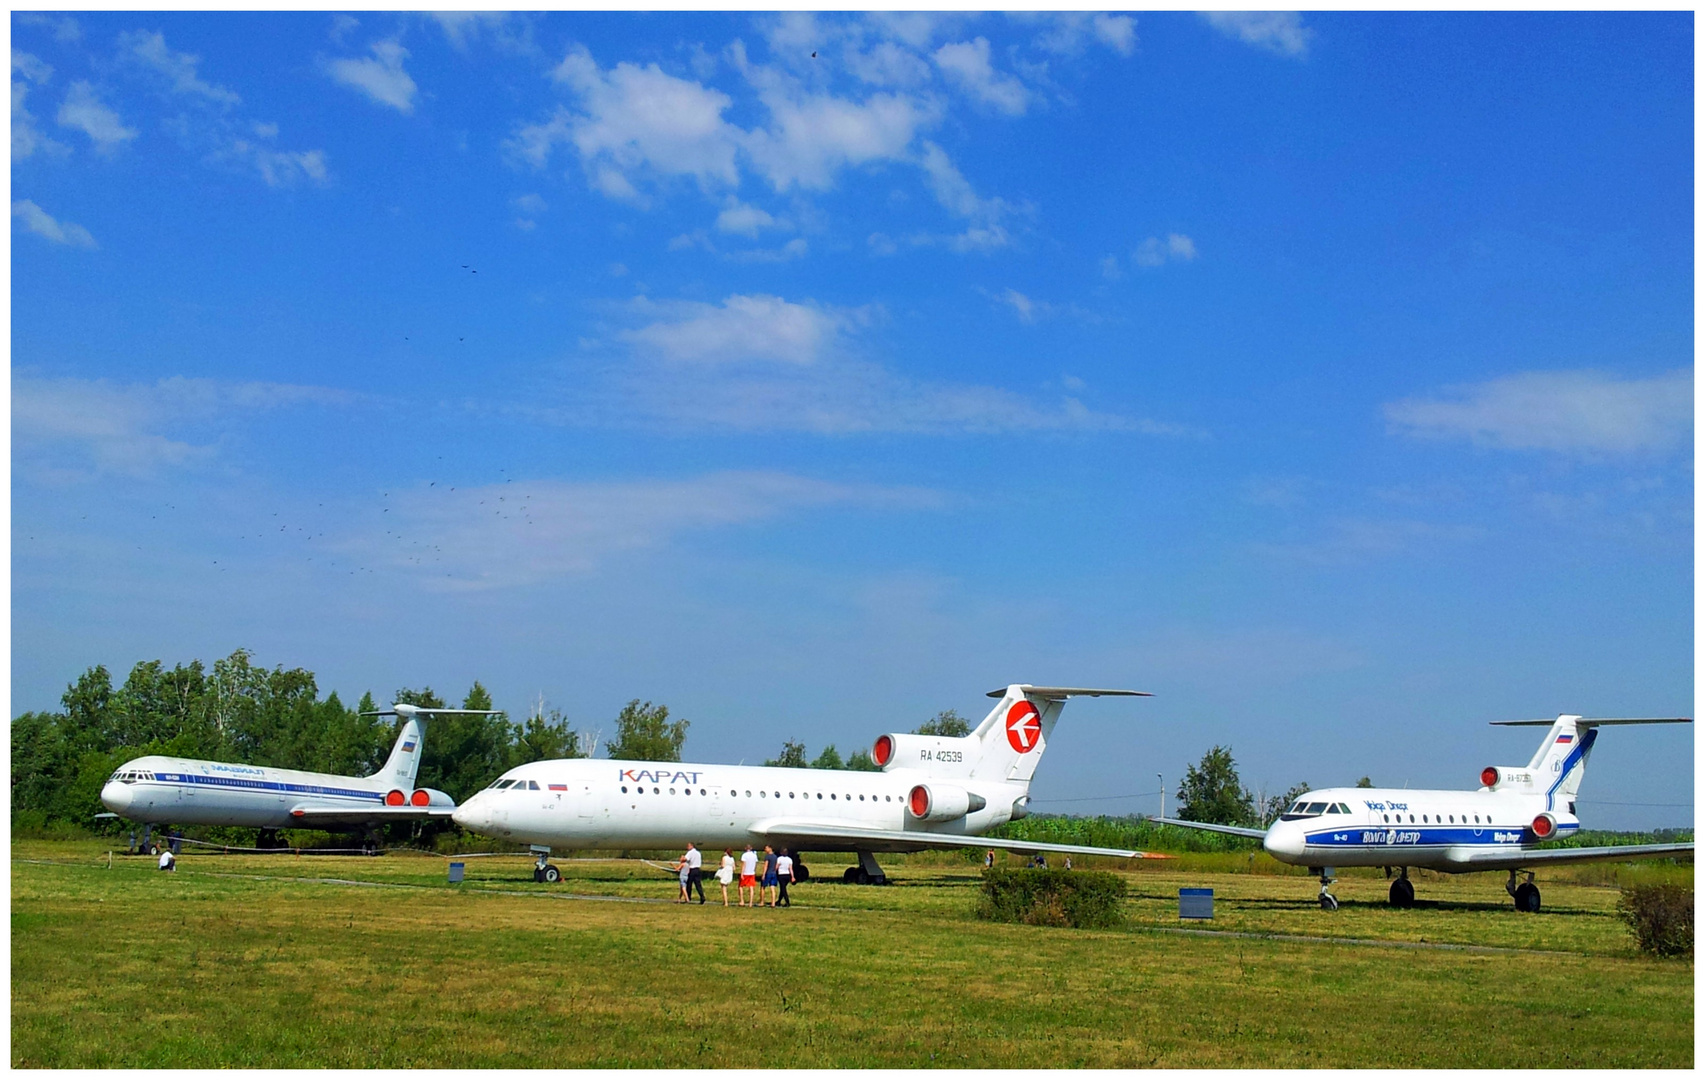 THE MUSEUM OF THE HISTORY OF CIVIL AVIATION